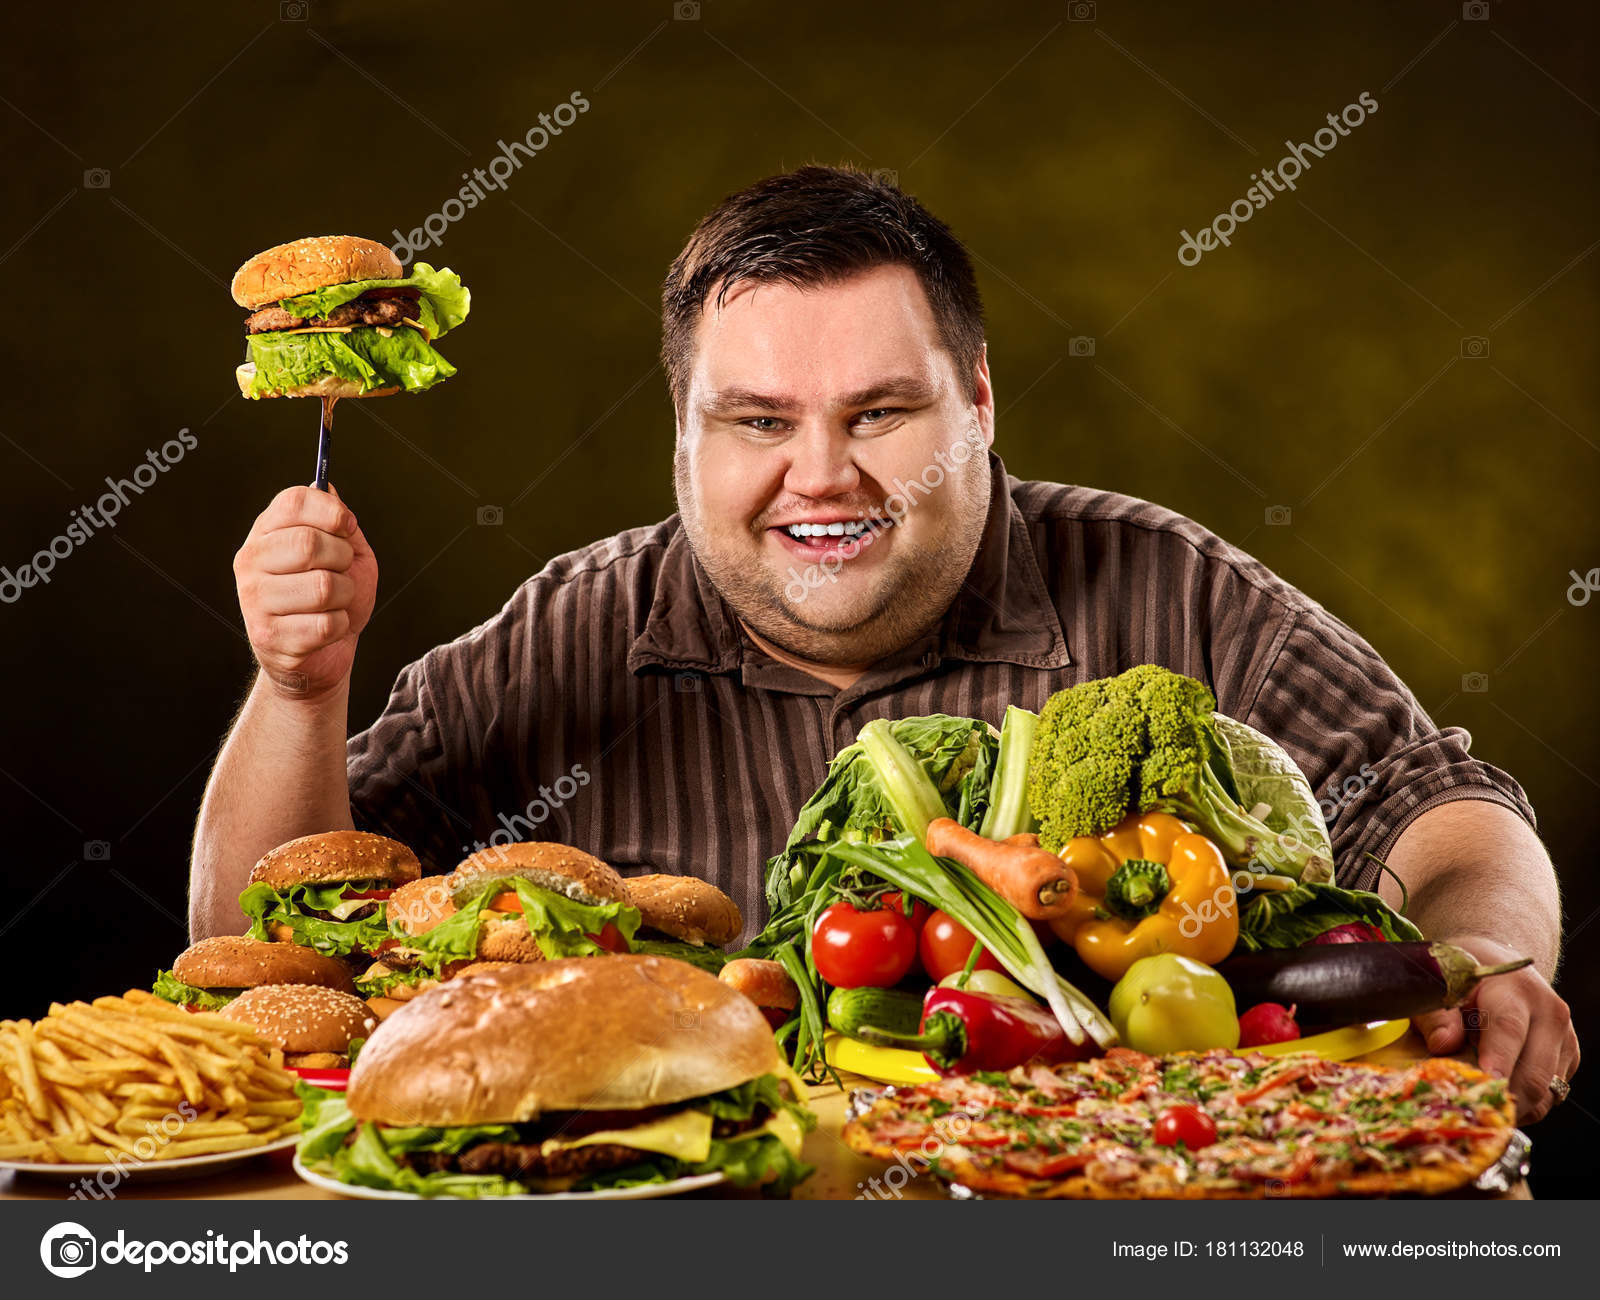 diet fat man makes choice between healthy and unhealthy food